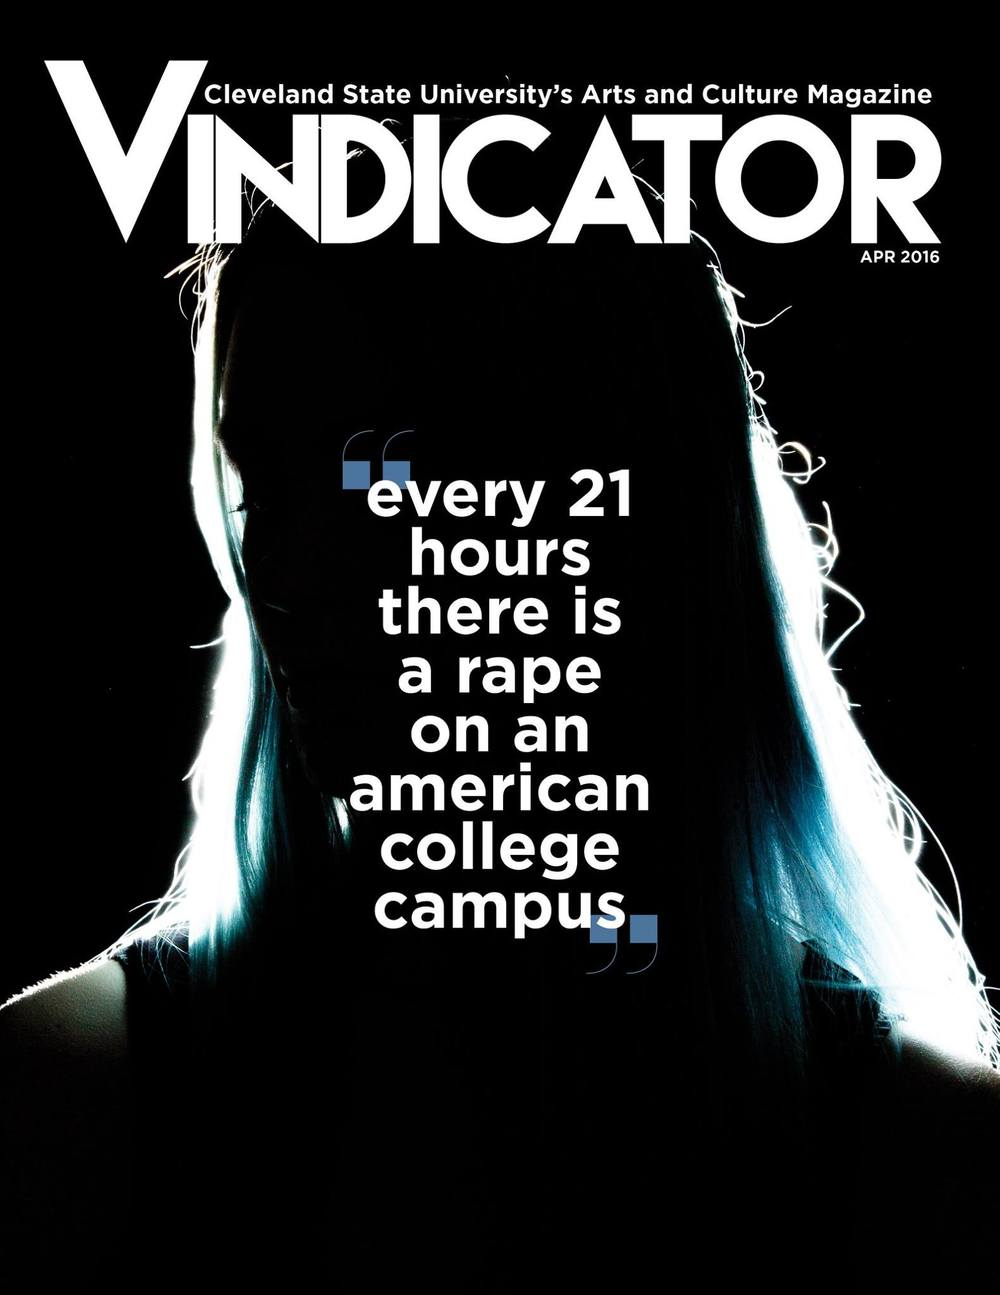 The Vindicator - April Issue Cover